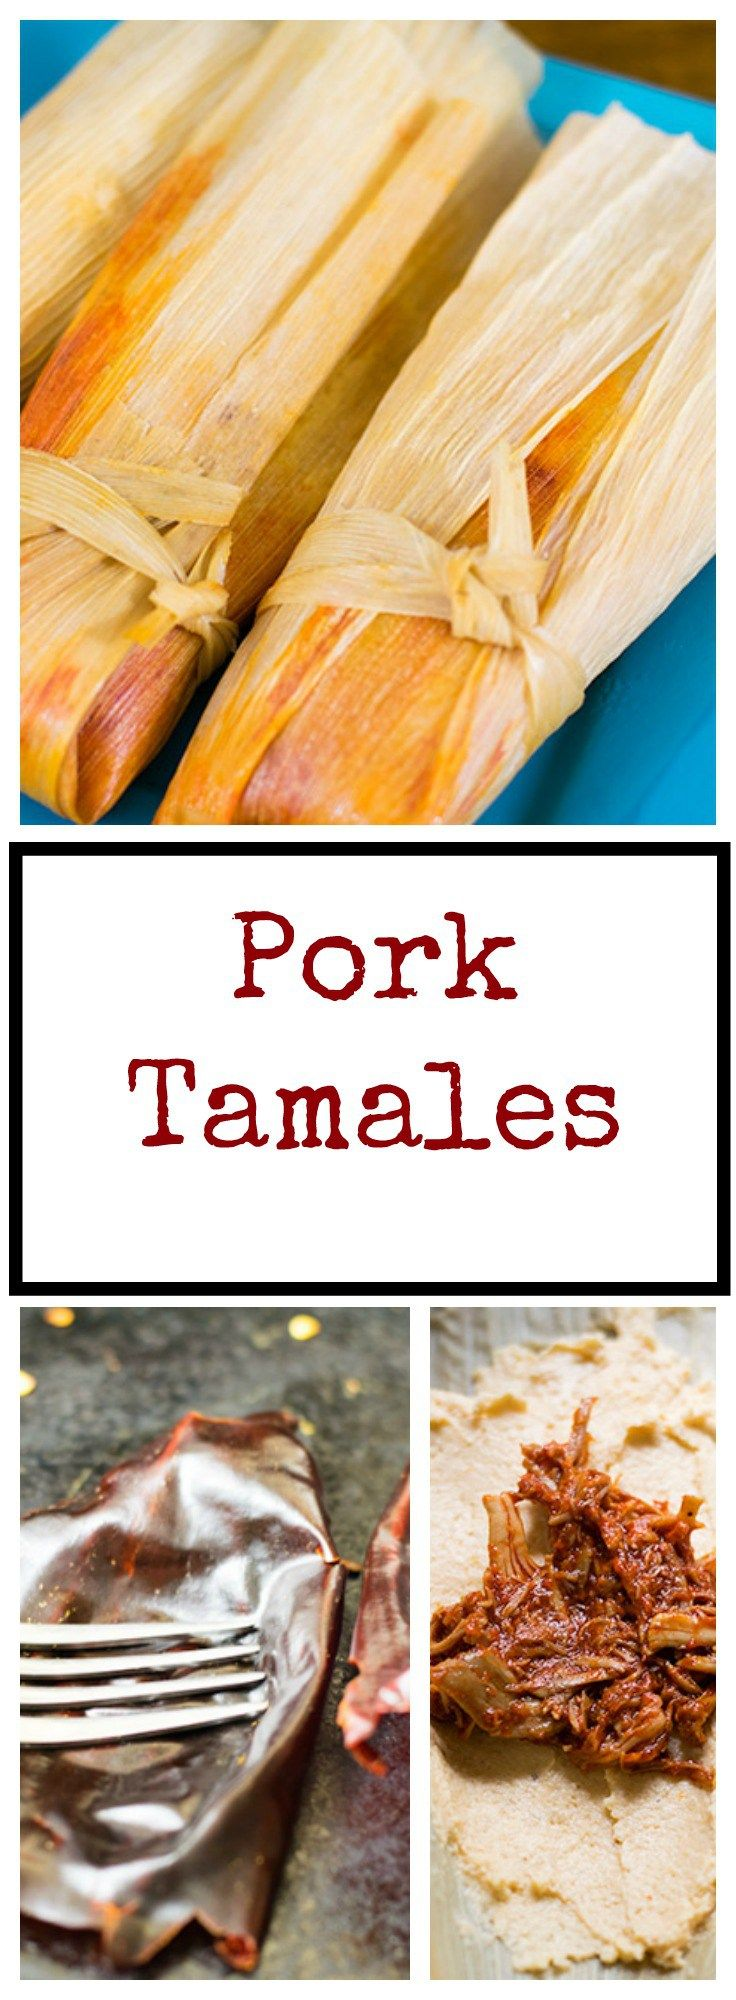 Pork Tamales (Tamales de Puerco) #mexicandishes